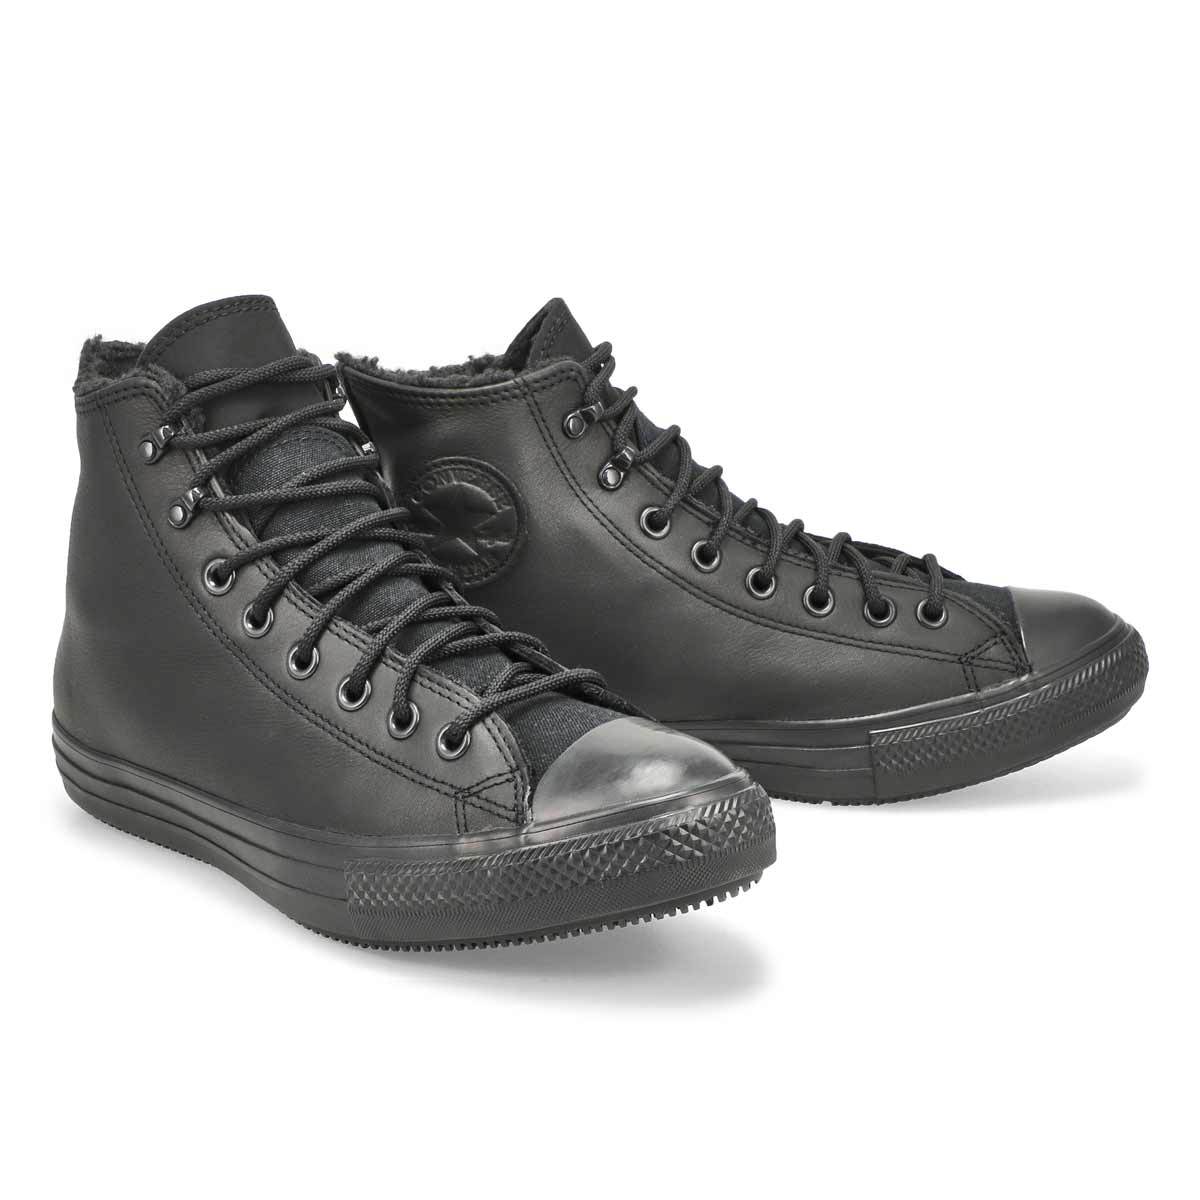 Mns CTAS Winter Hi blk/blk wtpf boot